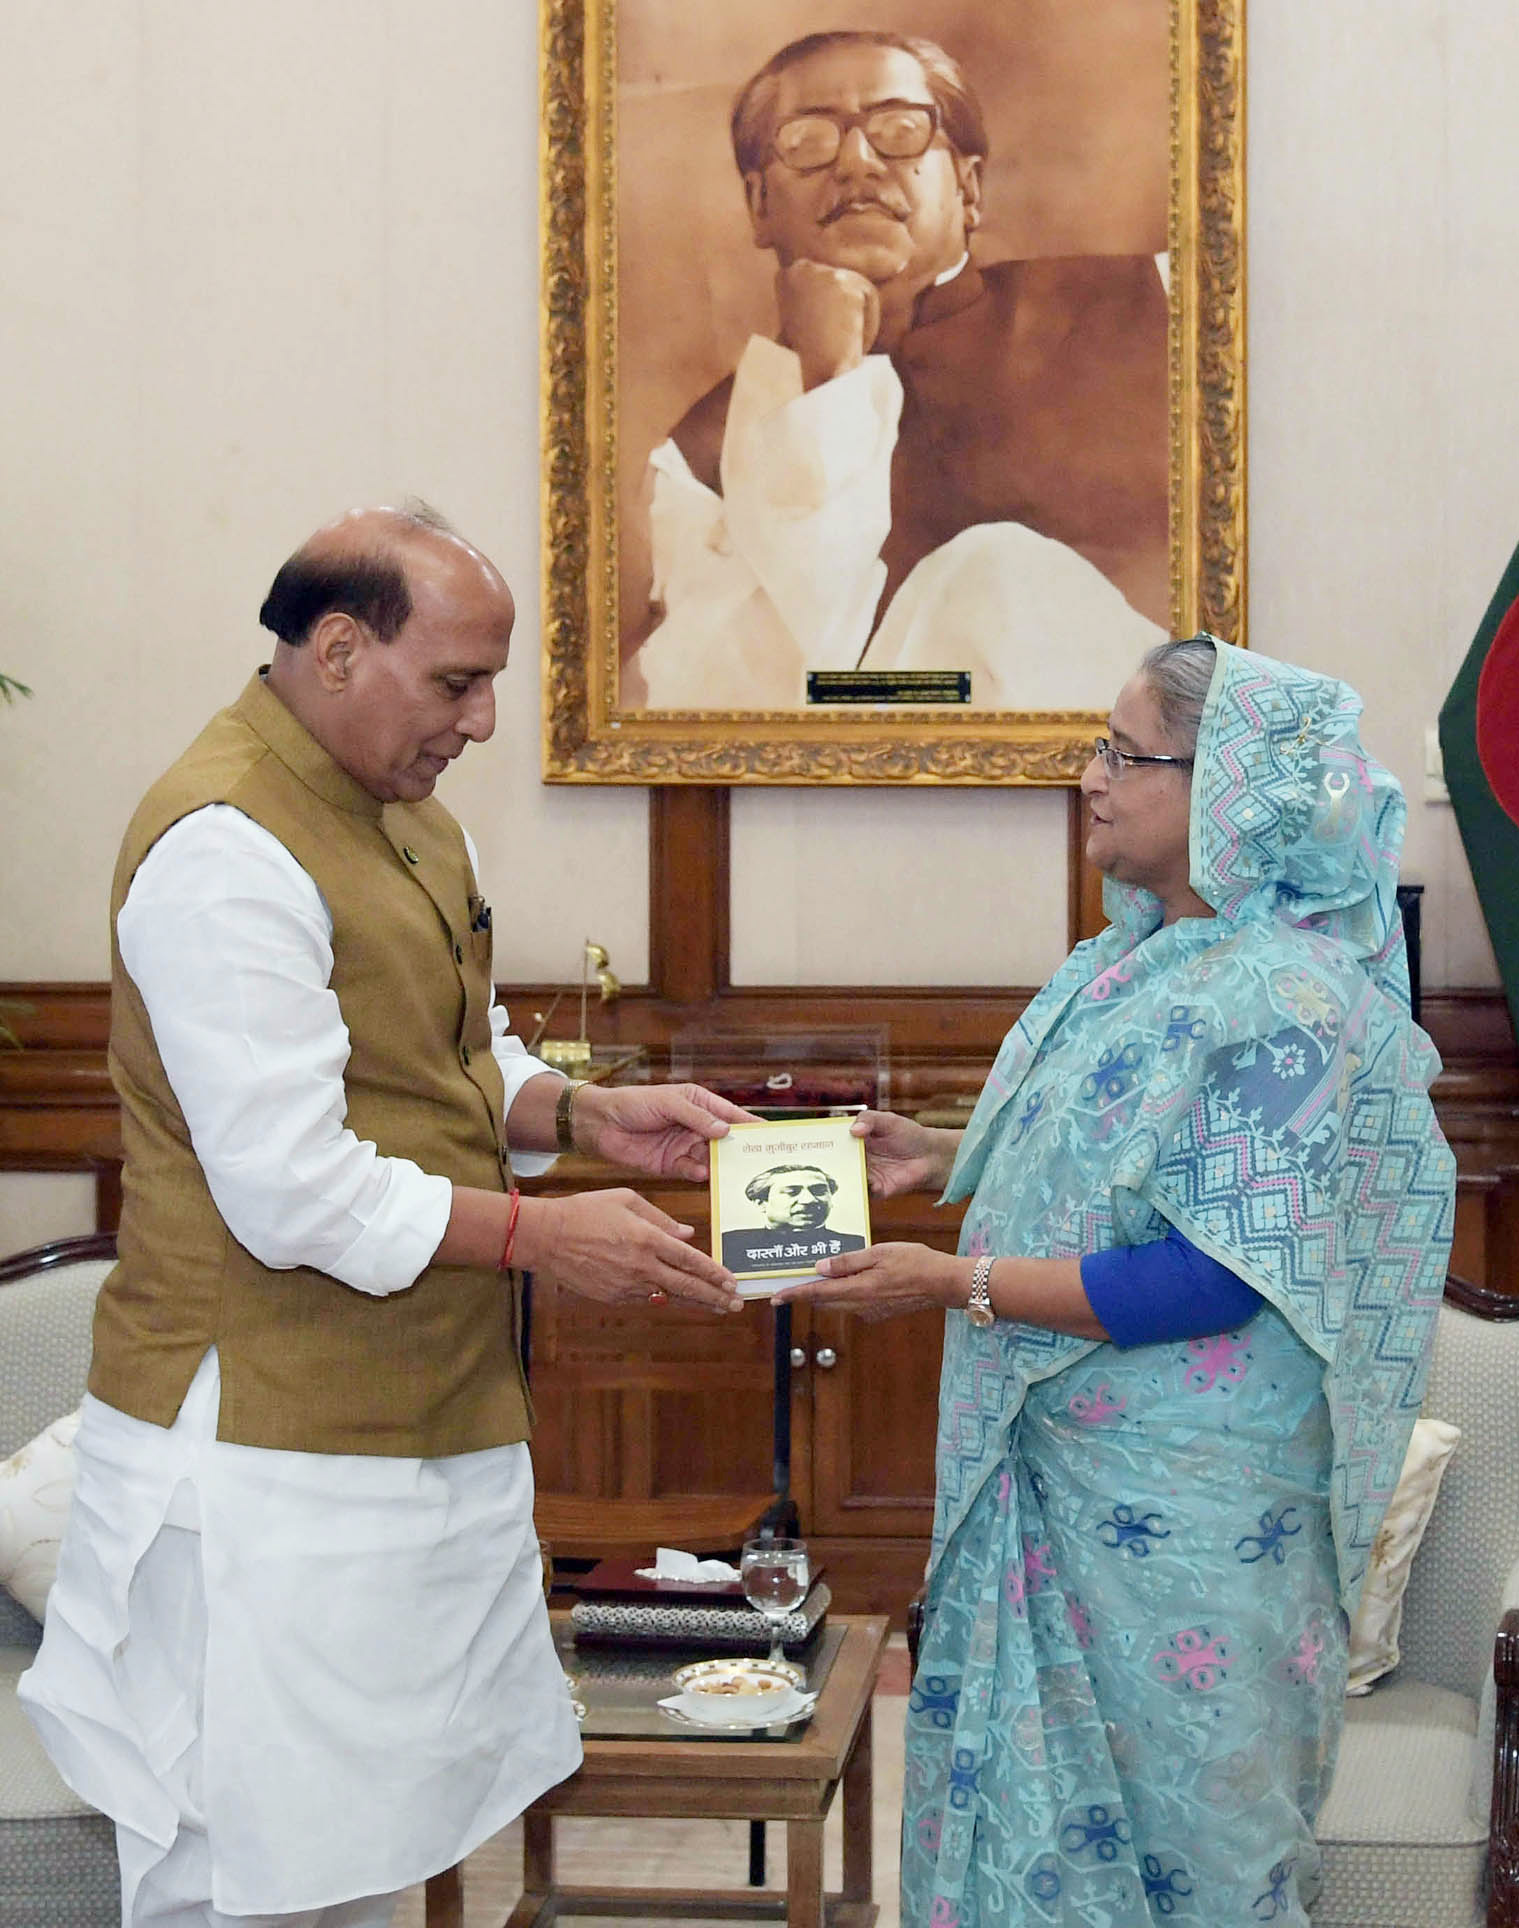 The Union Home Minister, Shri Rajnath Singh calling on the Prime Minister of Bangladesh, Ms. Sheikh Hasina, in Dhaka, Bangladesh on July 14, 2018.